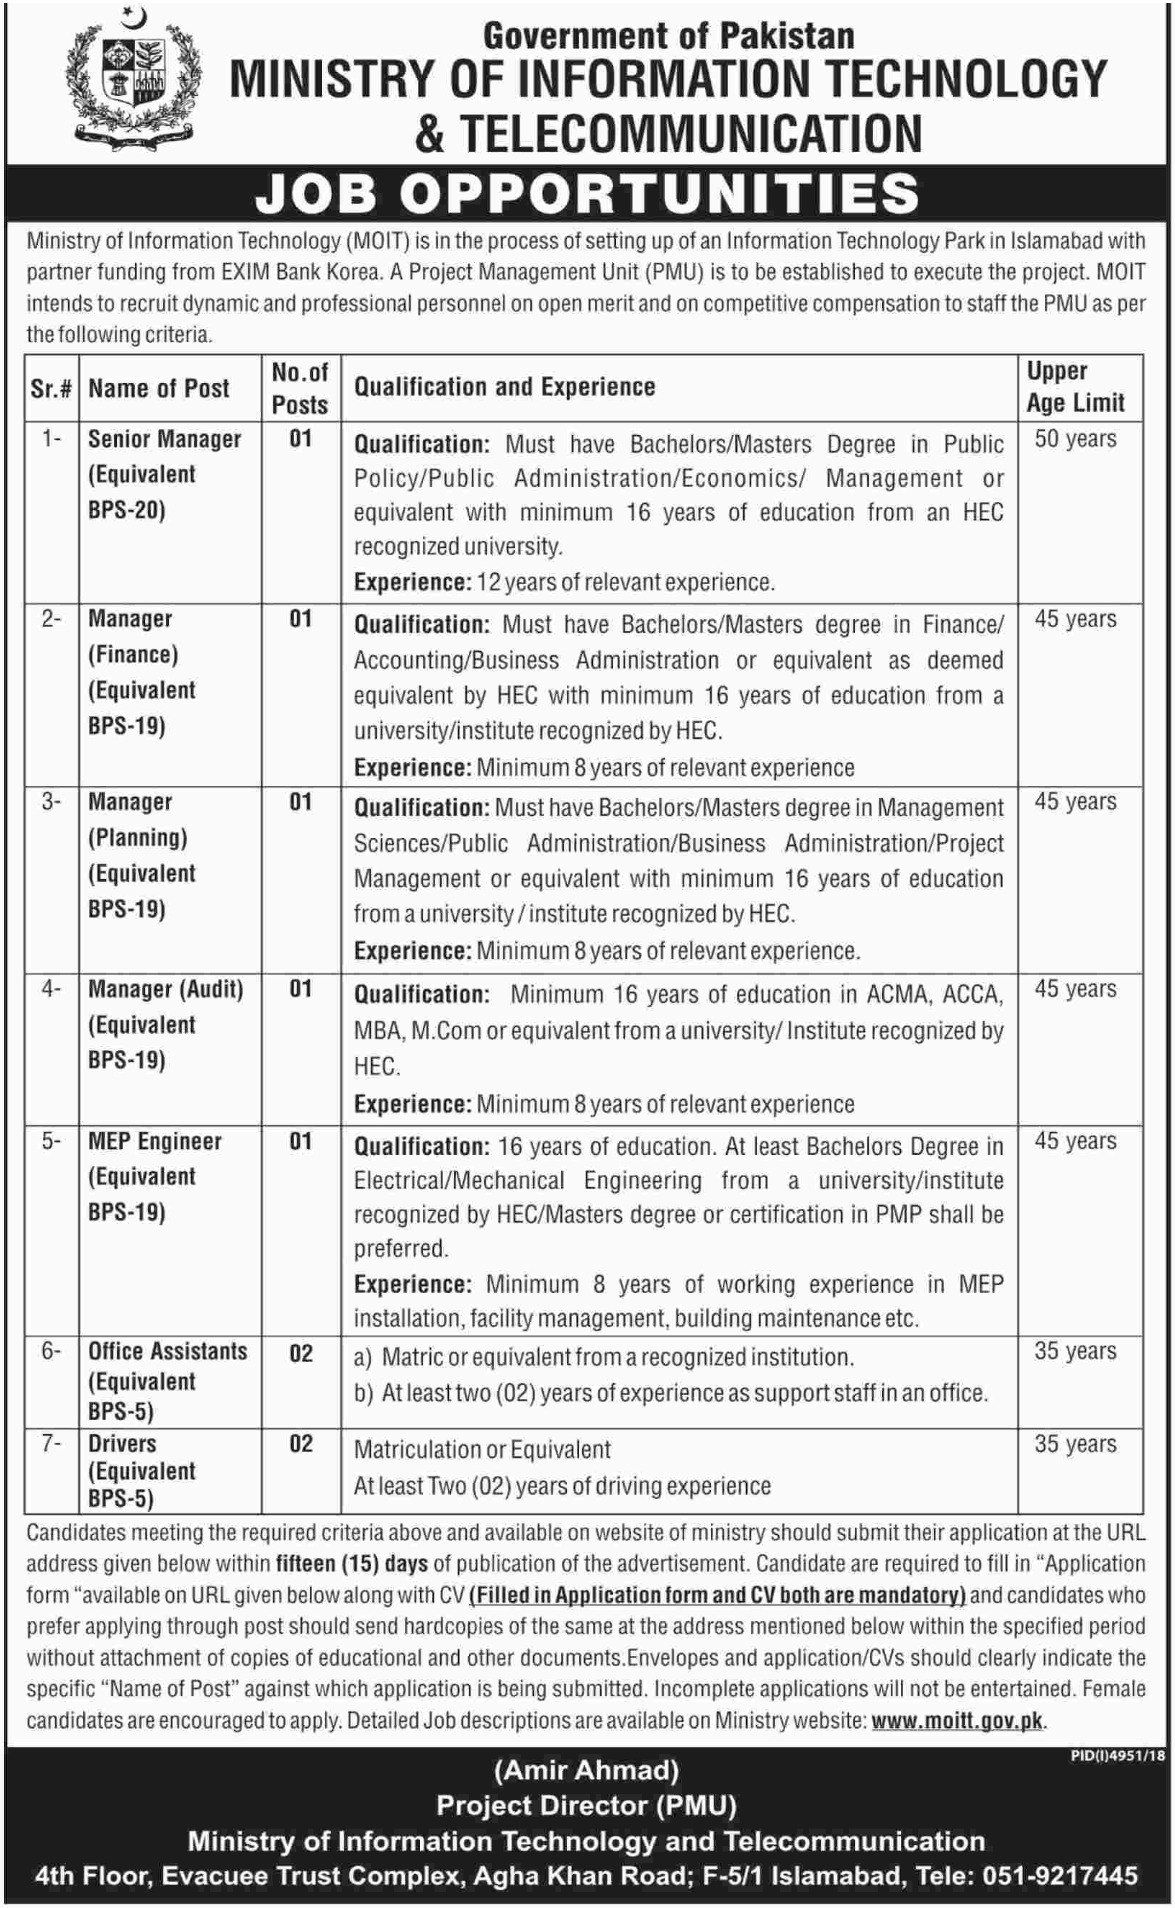 Ministry of Information Technology and Telecommunication Jobs 2019 MOIT Islamabad Latest